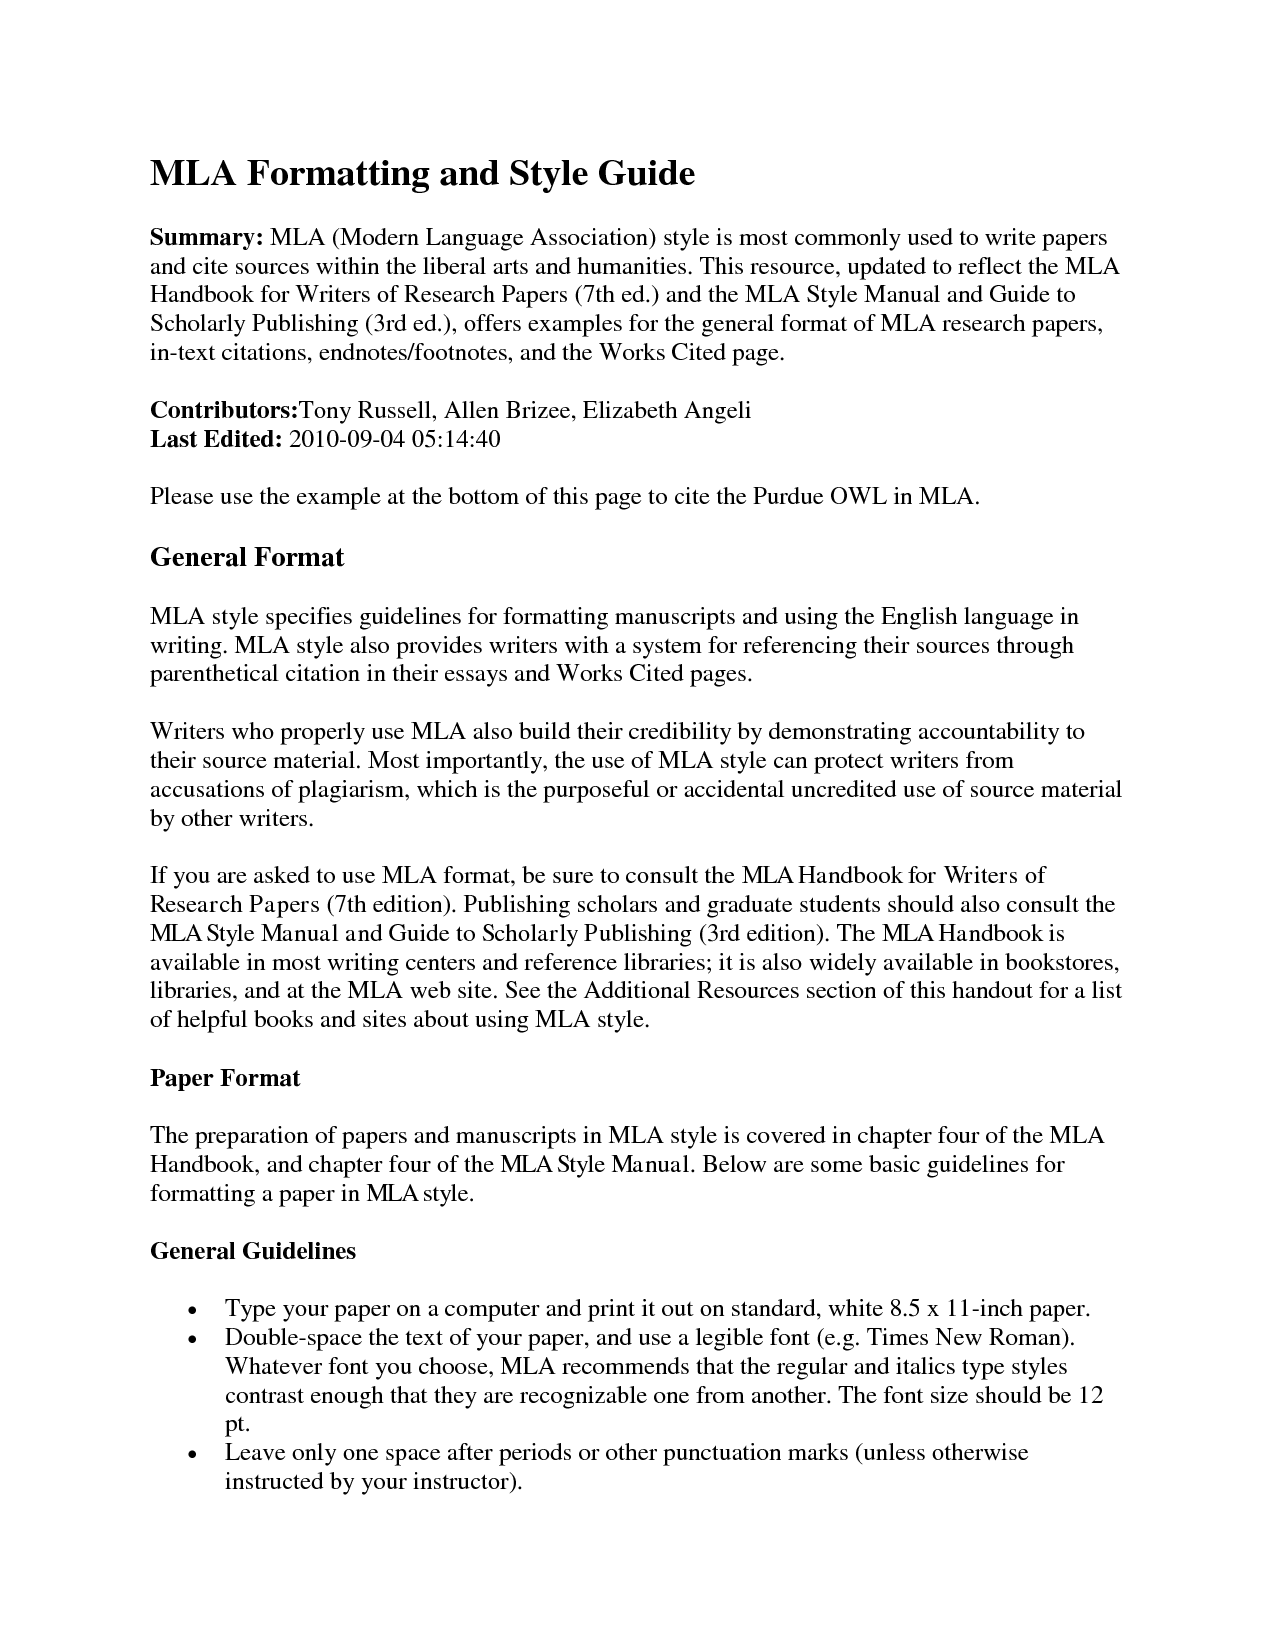 018 Mla Essay Headings Format Section Example Heading Proper For Title Italicized Underlined Paper Page In Multiple Authors Archaicawful Research Works Cited College Full